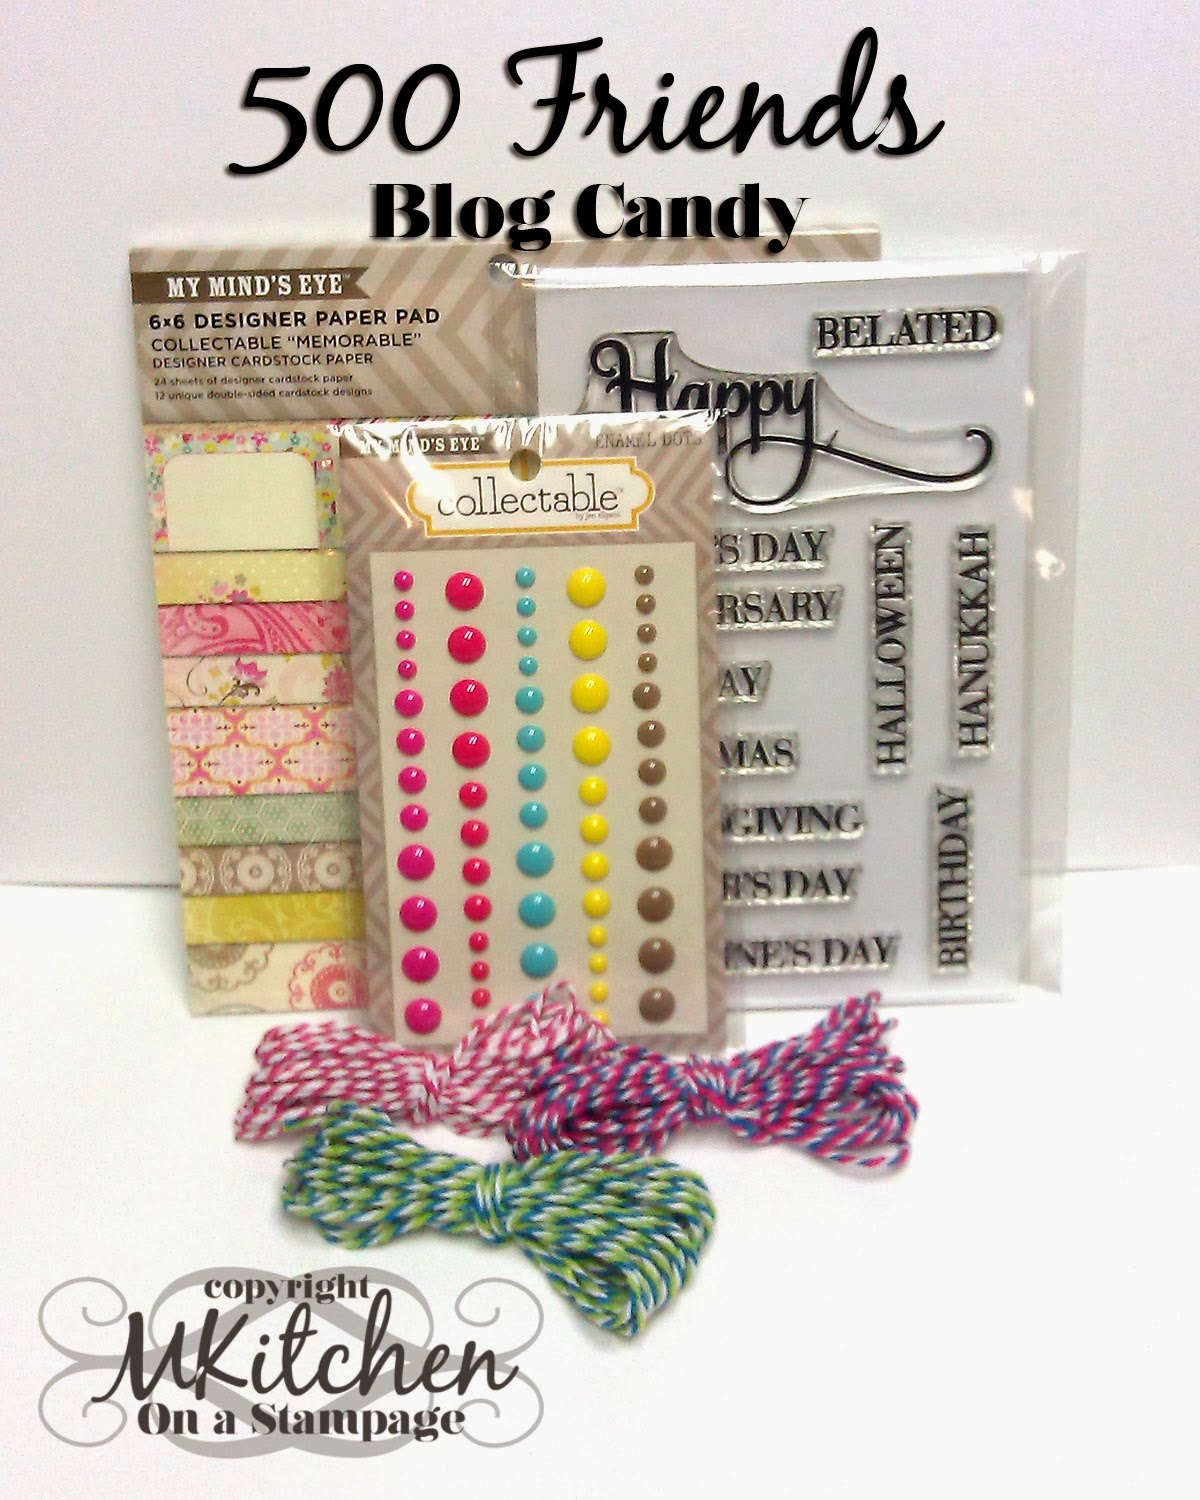 Blog candy from Mynette !